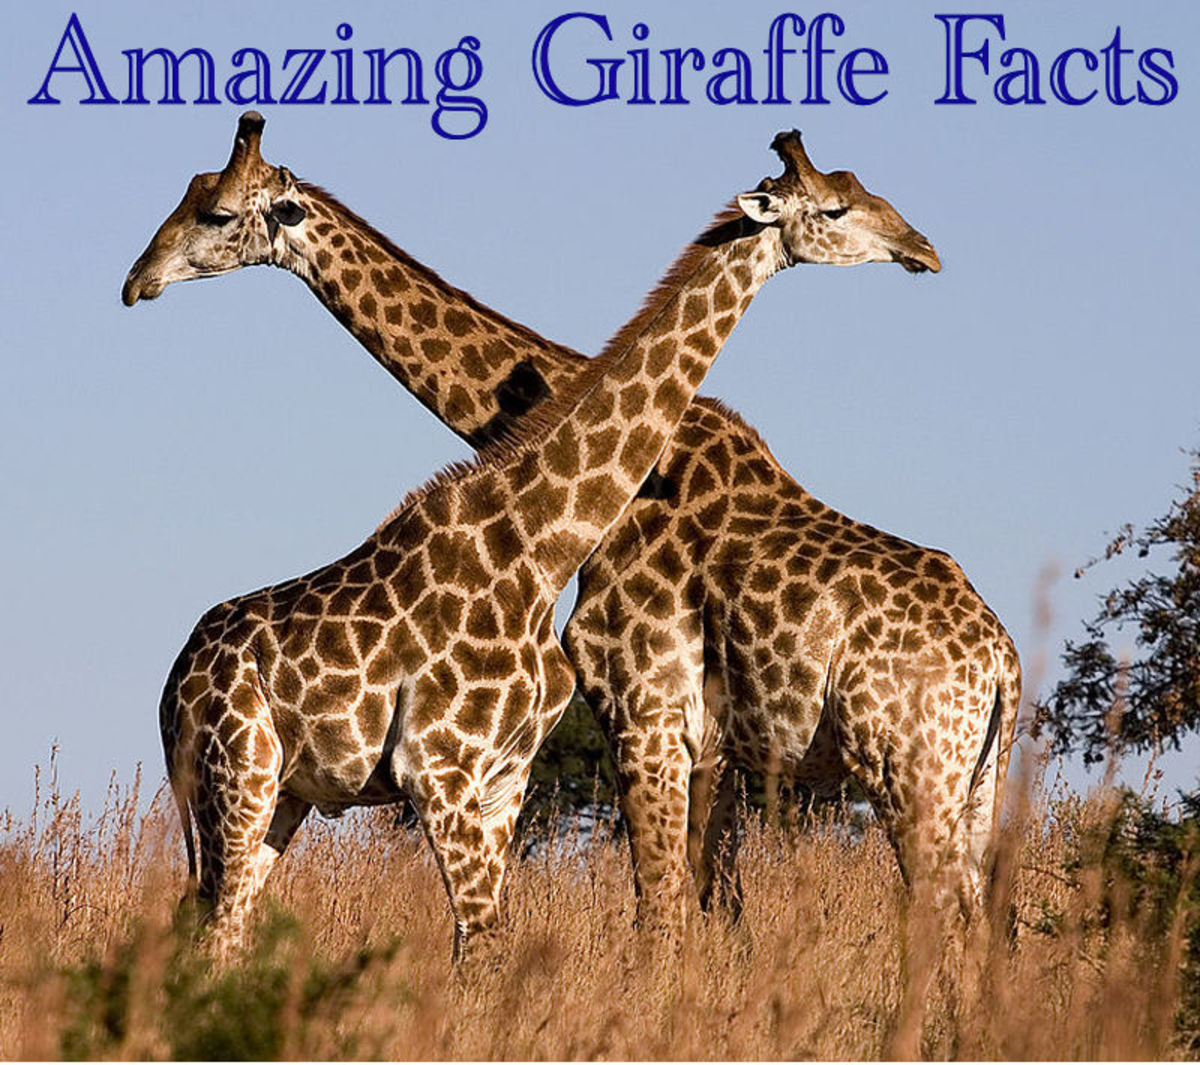 30 Giraffe Facts and Photos: Fun Animal Facts for Kids